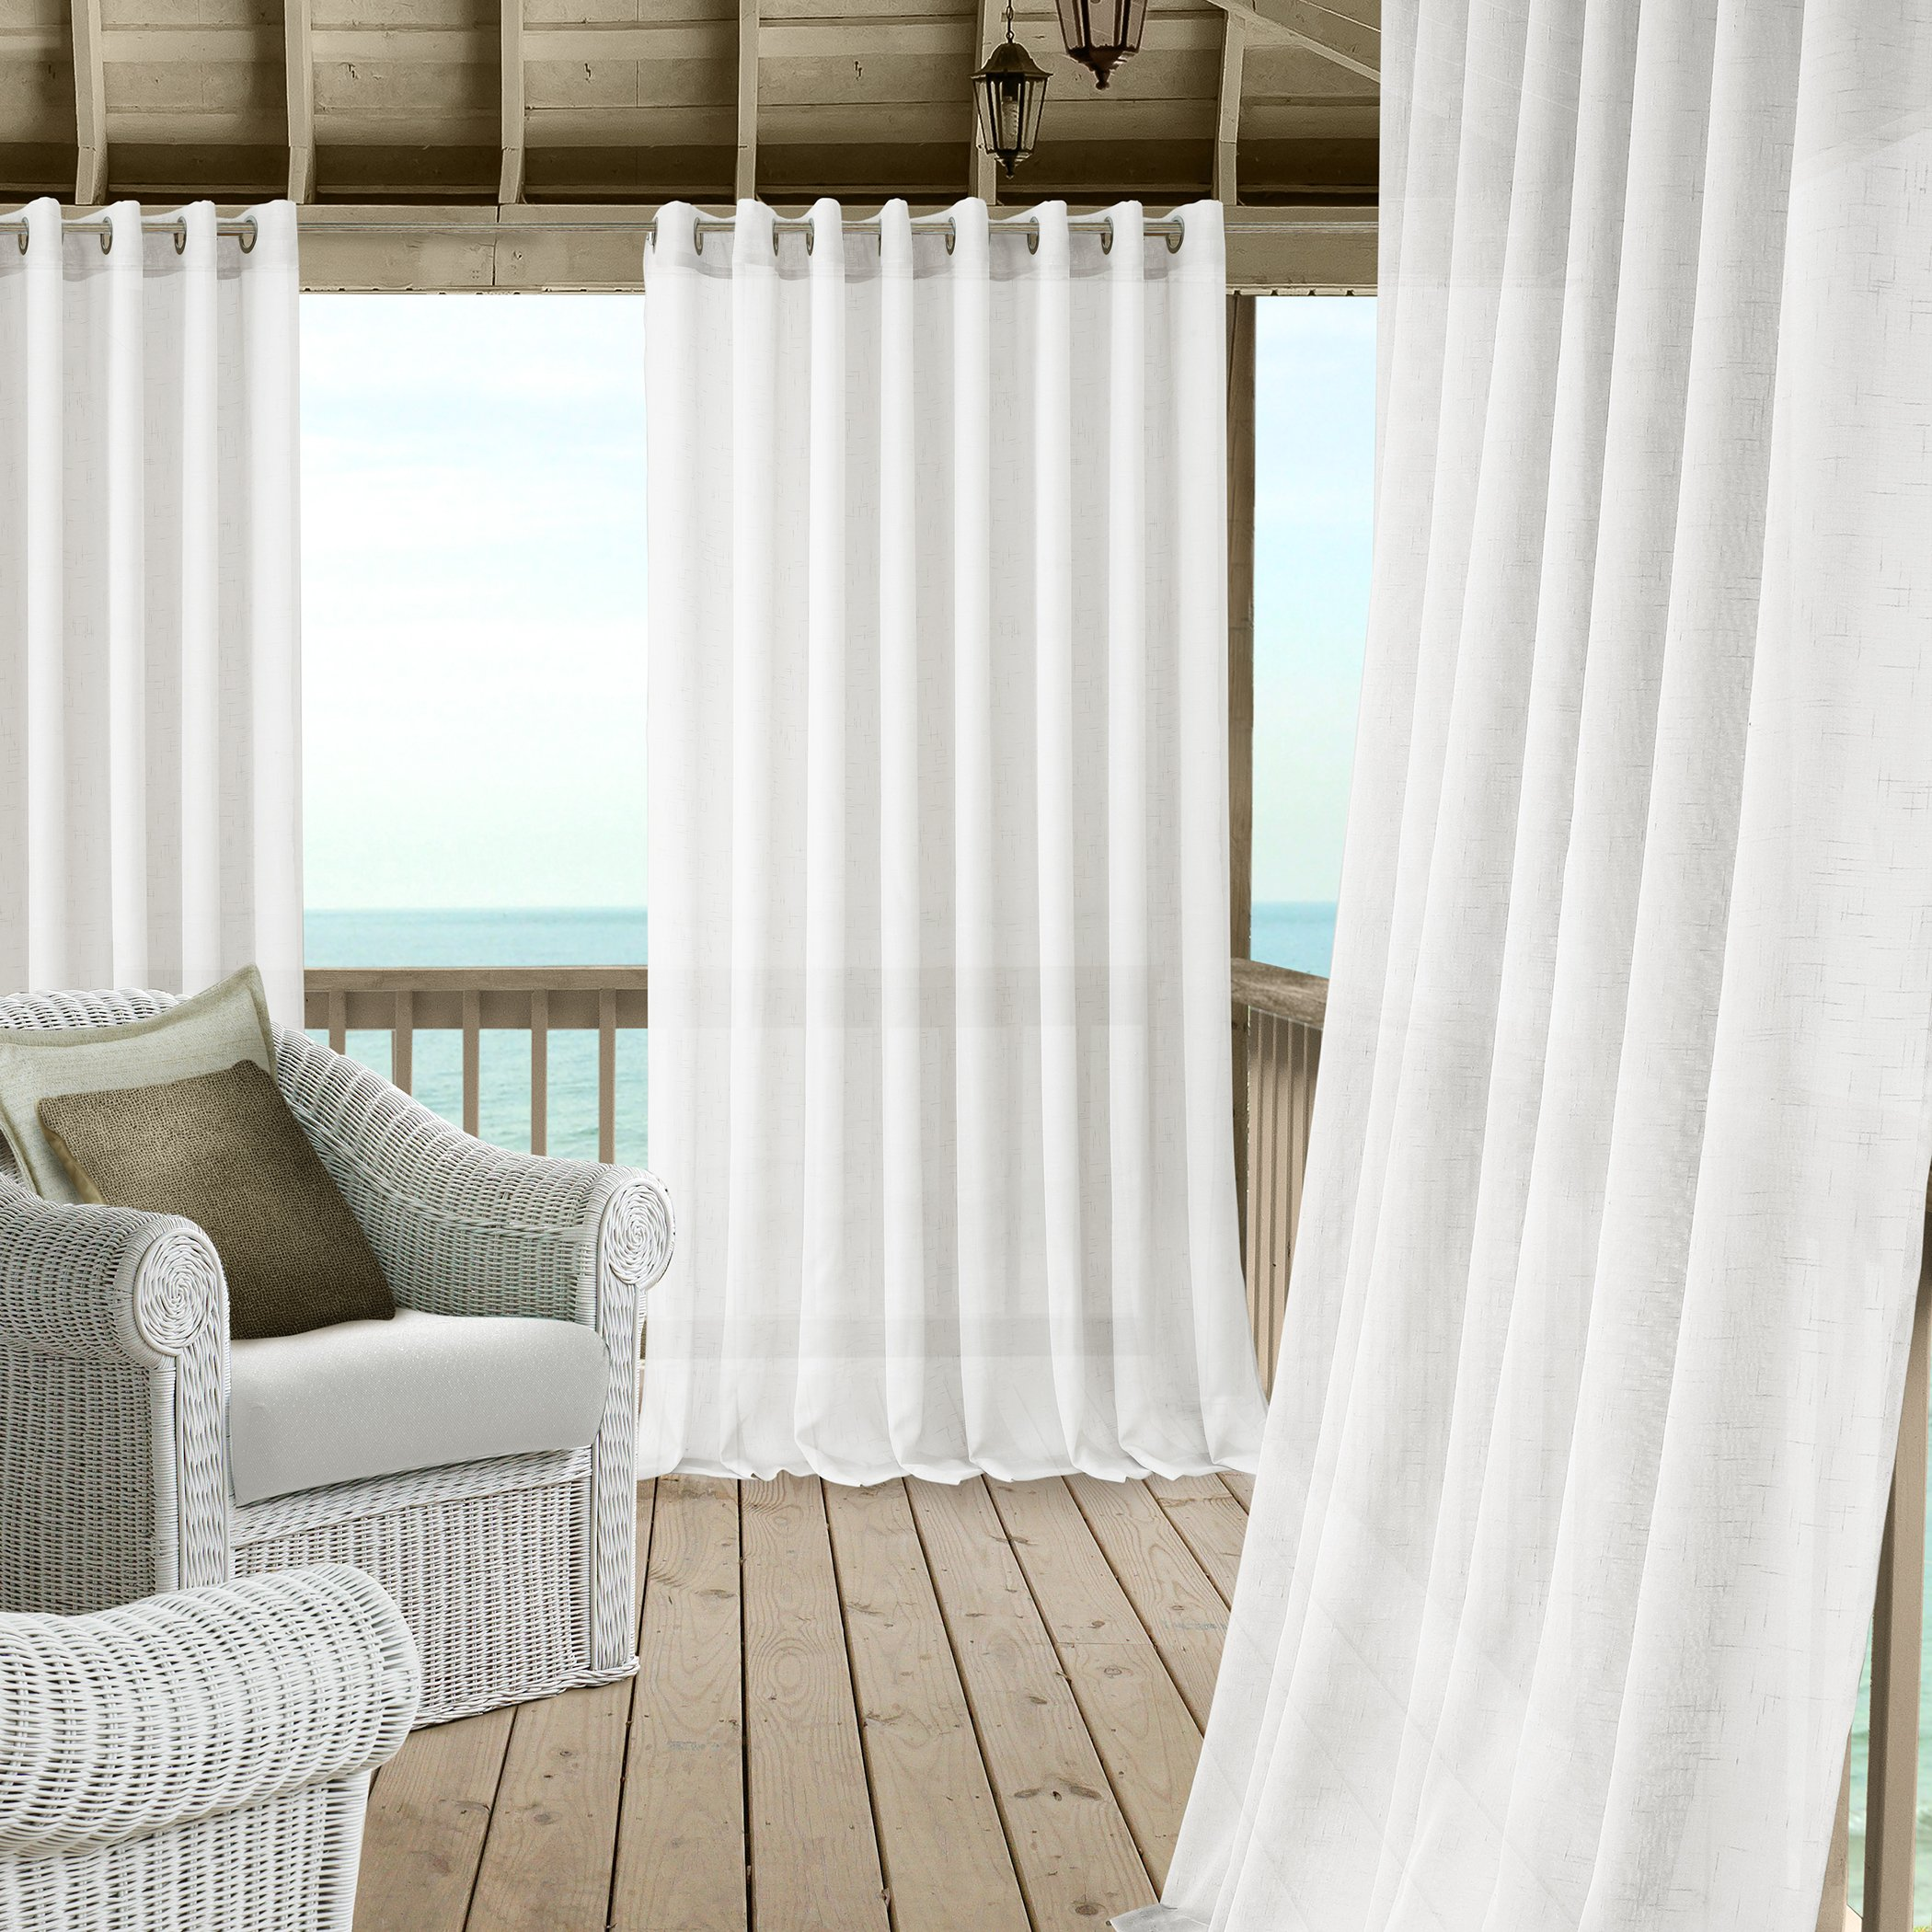 Carmen Sheer Extra Wide Indoor/Outdoor Grommet Top Single Panel Window Curtain Drape/Curtain Patio, Gazebo and Pergola Panel Includes 1 tieback, 114 Inch Wide X 108 Inch Long, White